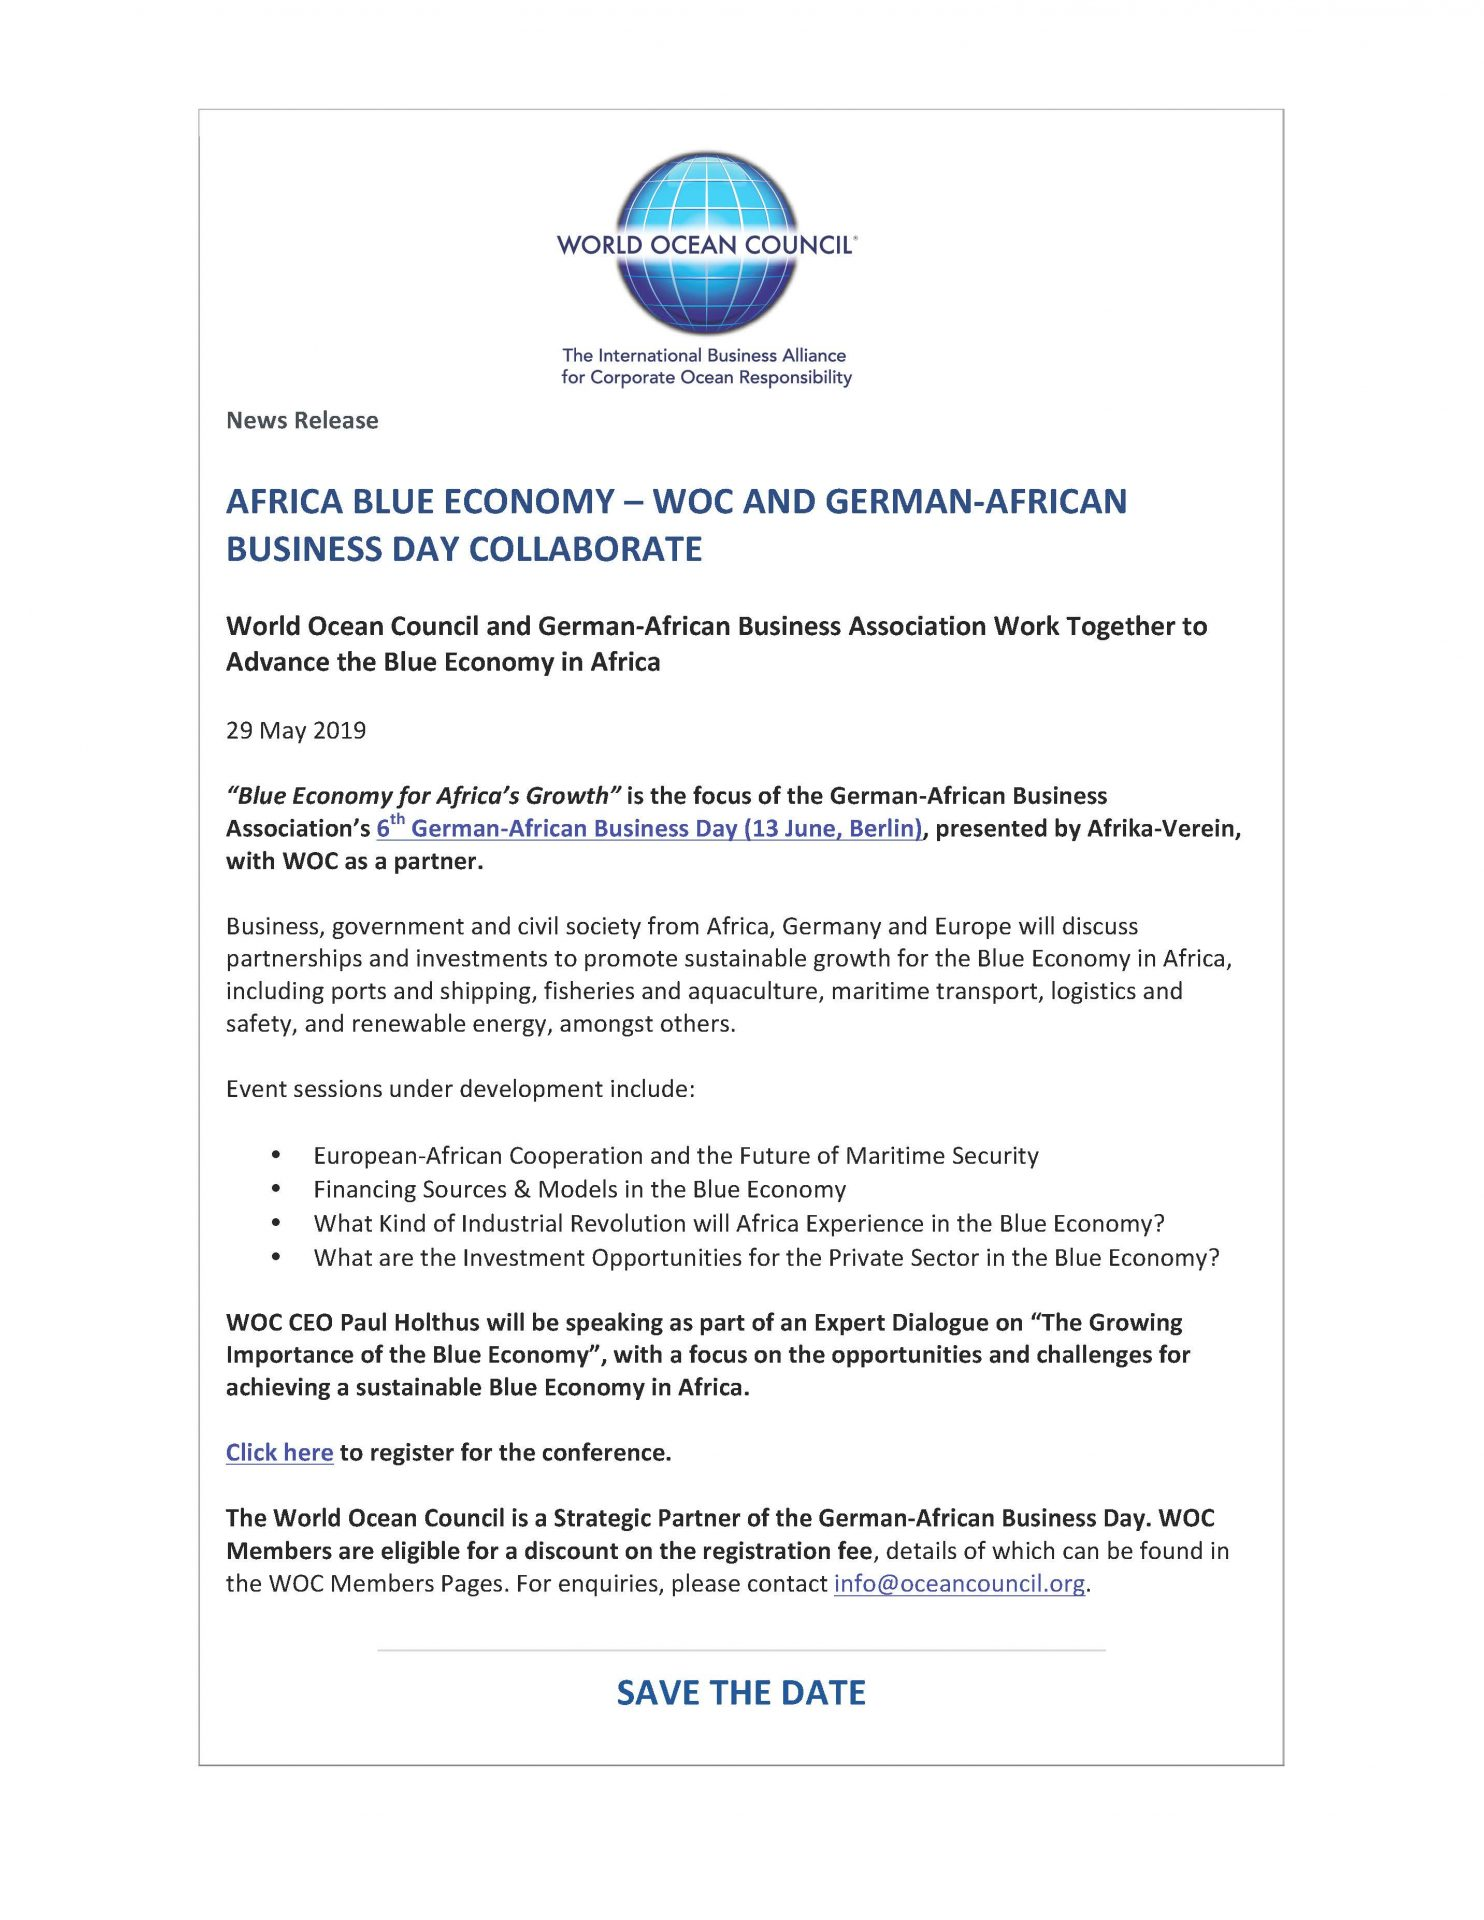 Africa Blue Economy - WOC and German-African Business Day Collaborate - 29 May 2019